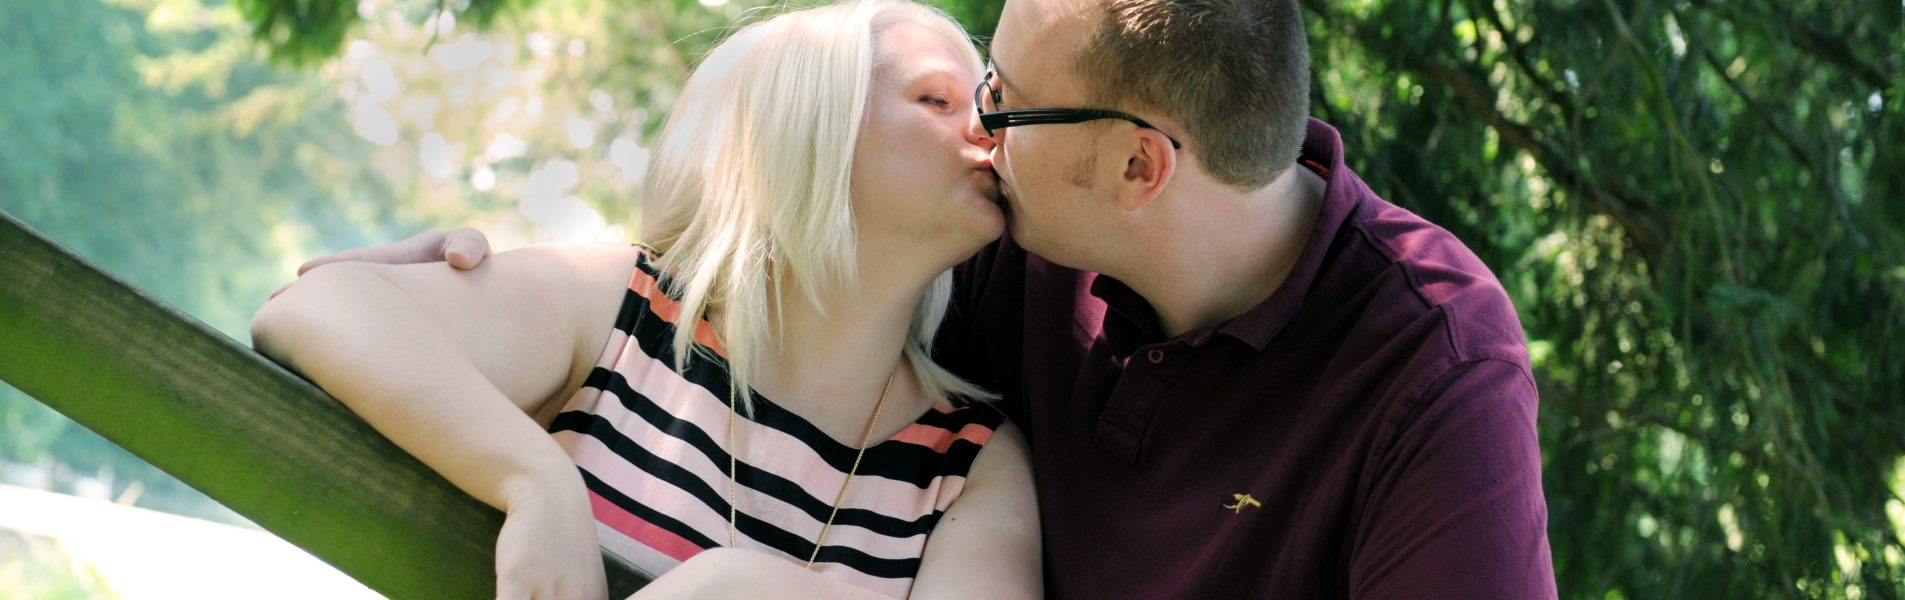 Susie and Chris - Pre Wedding Photography High Wycombe